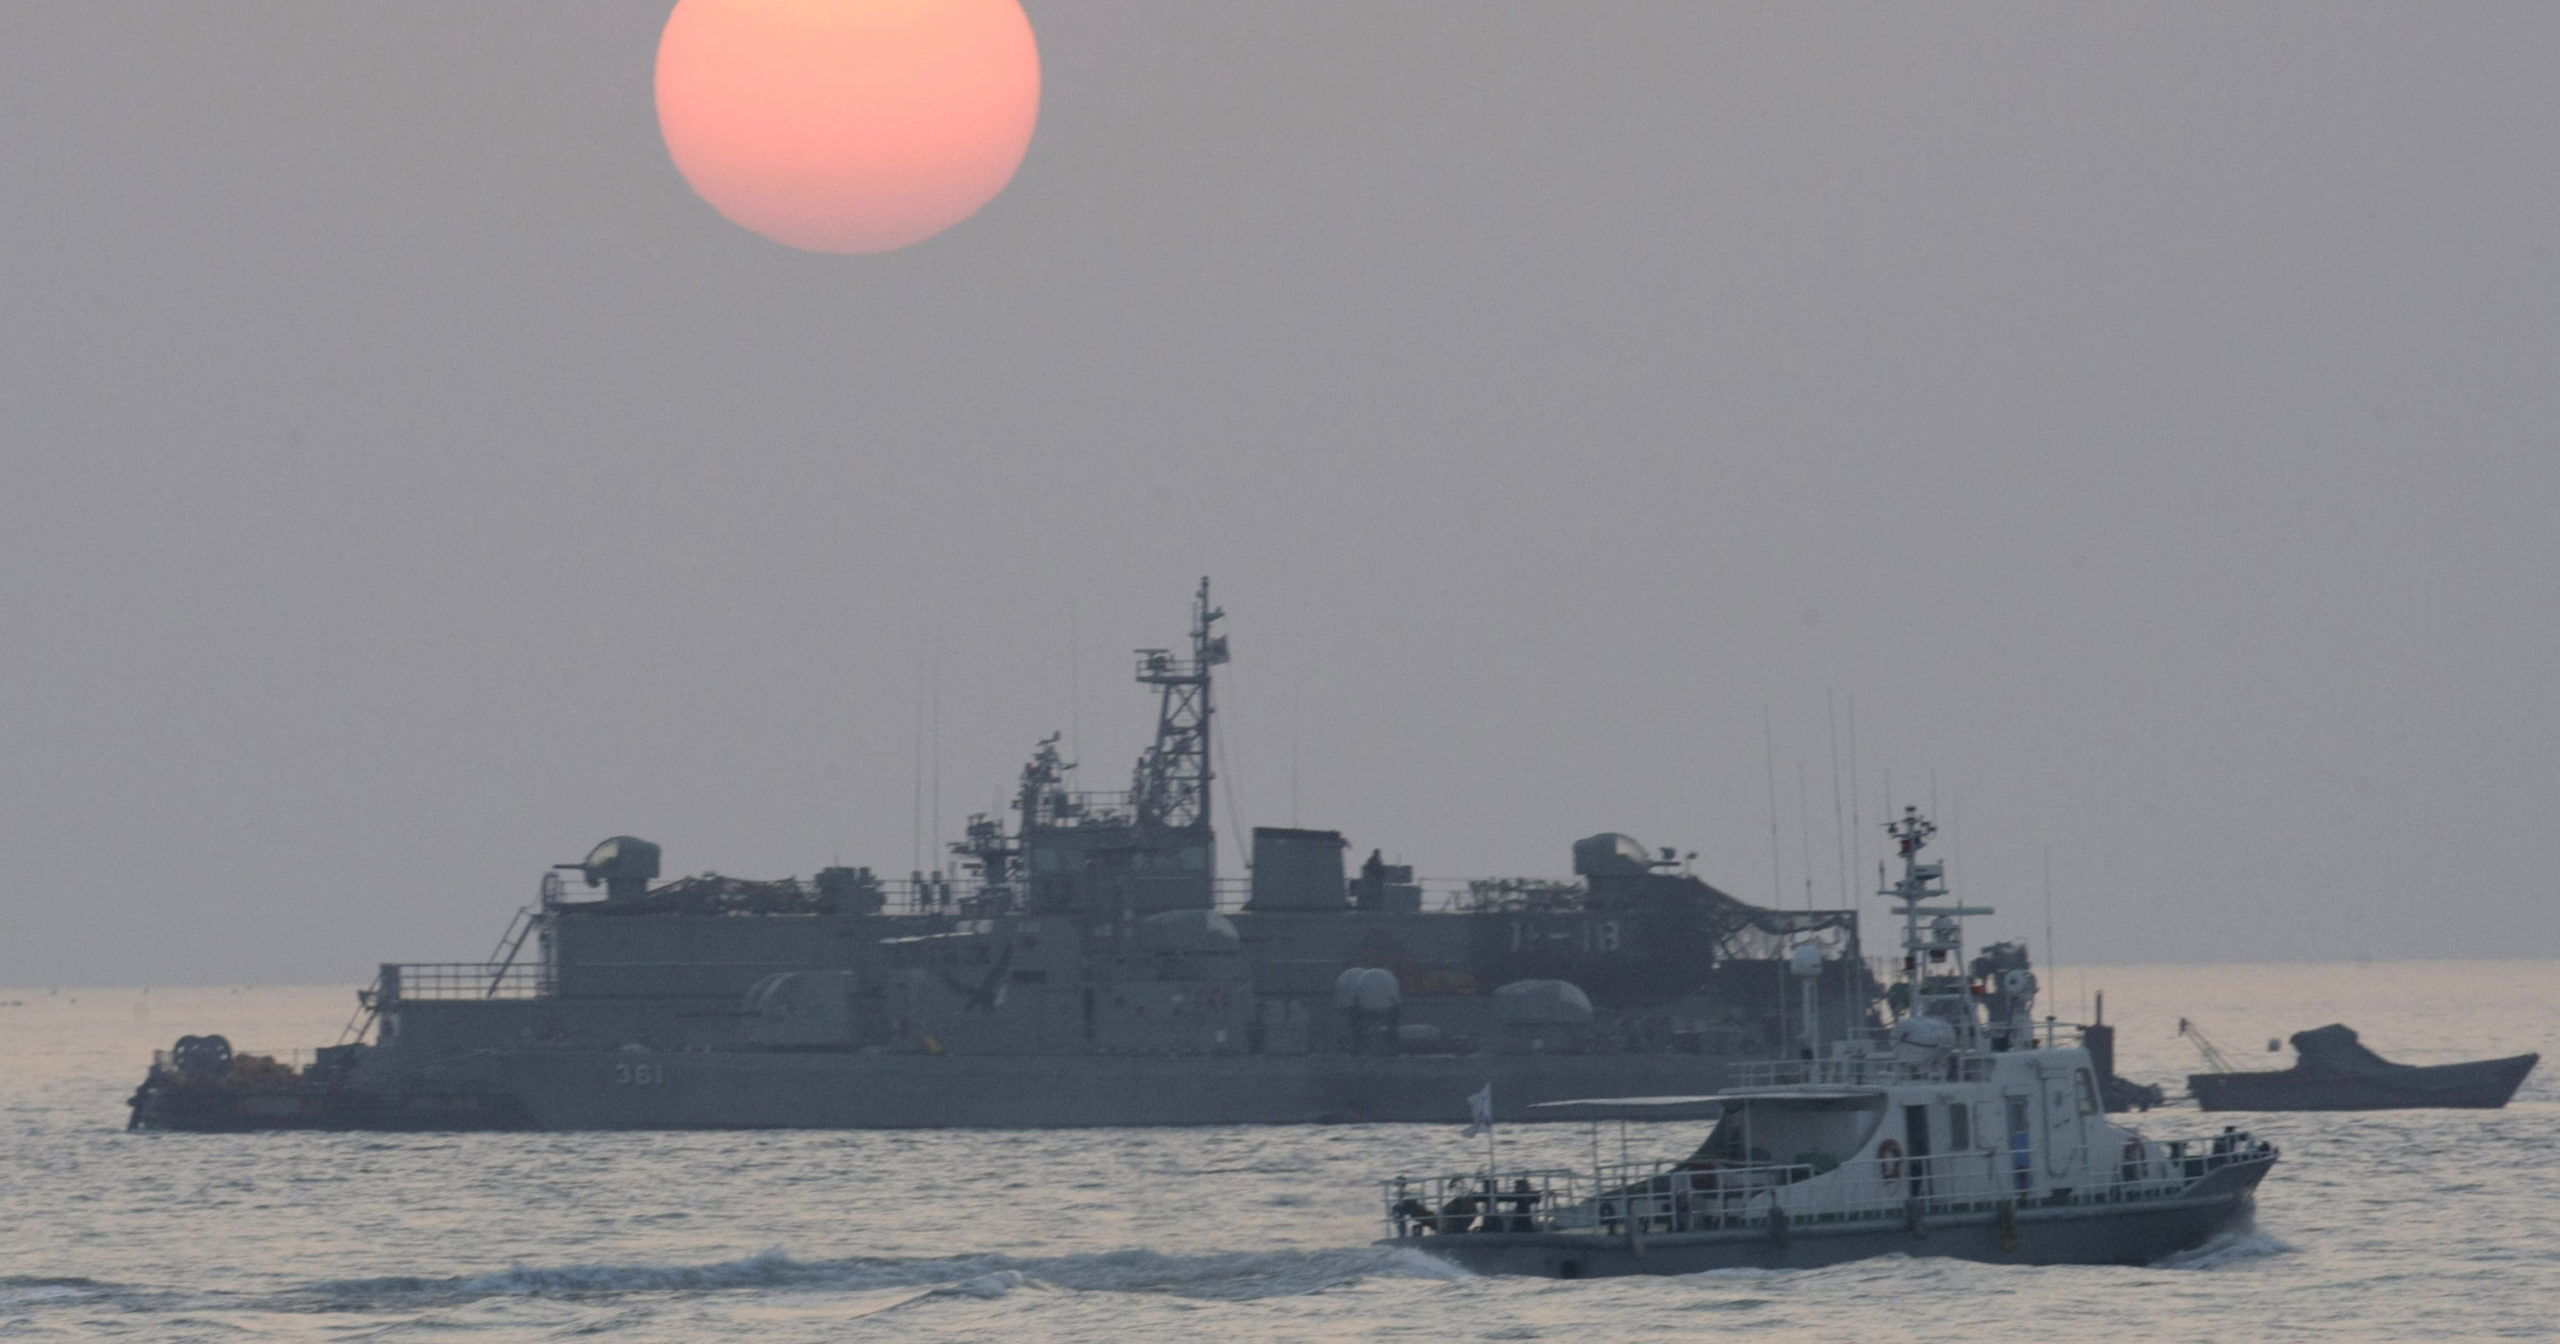 In this Dec. 22, 2010, file photo, a government ship sails past the South Korean Navy's floating base as the sun rises near Yeonpyeong island, South Korea.